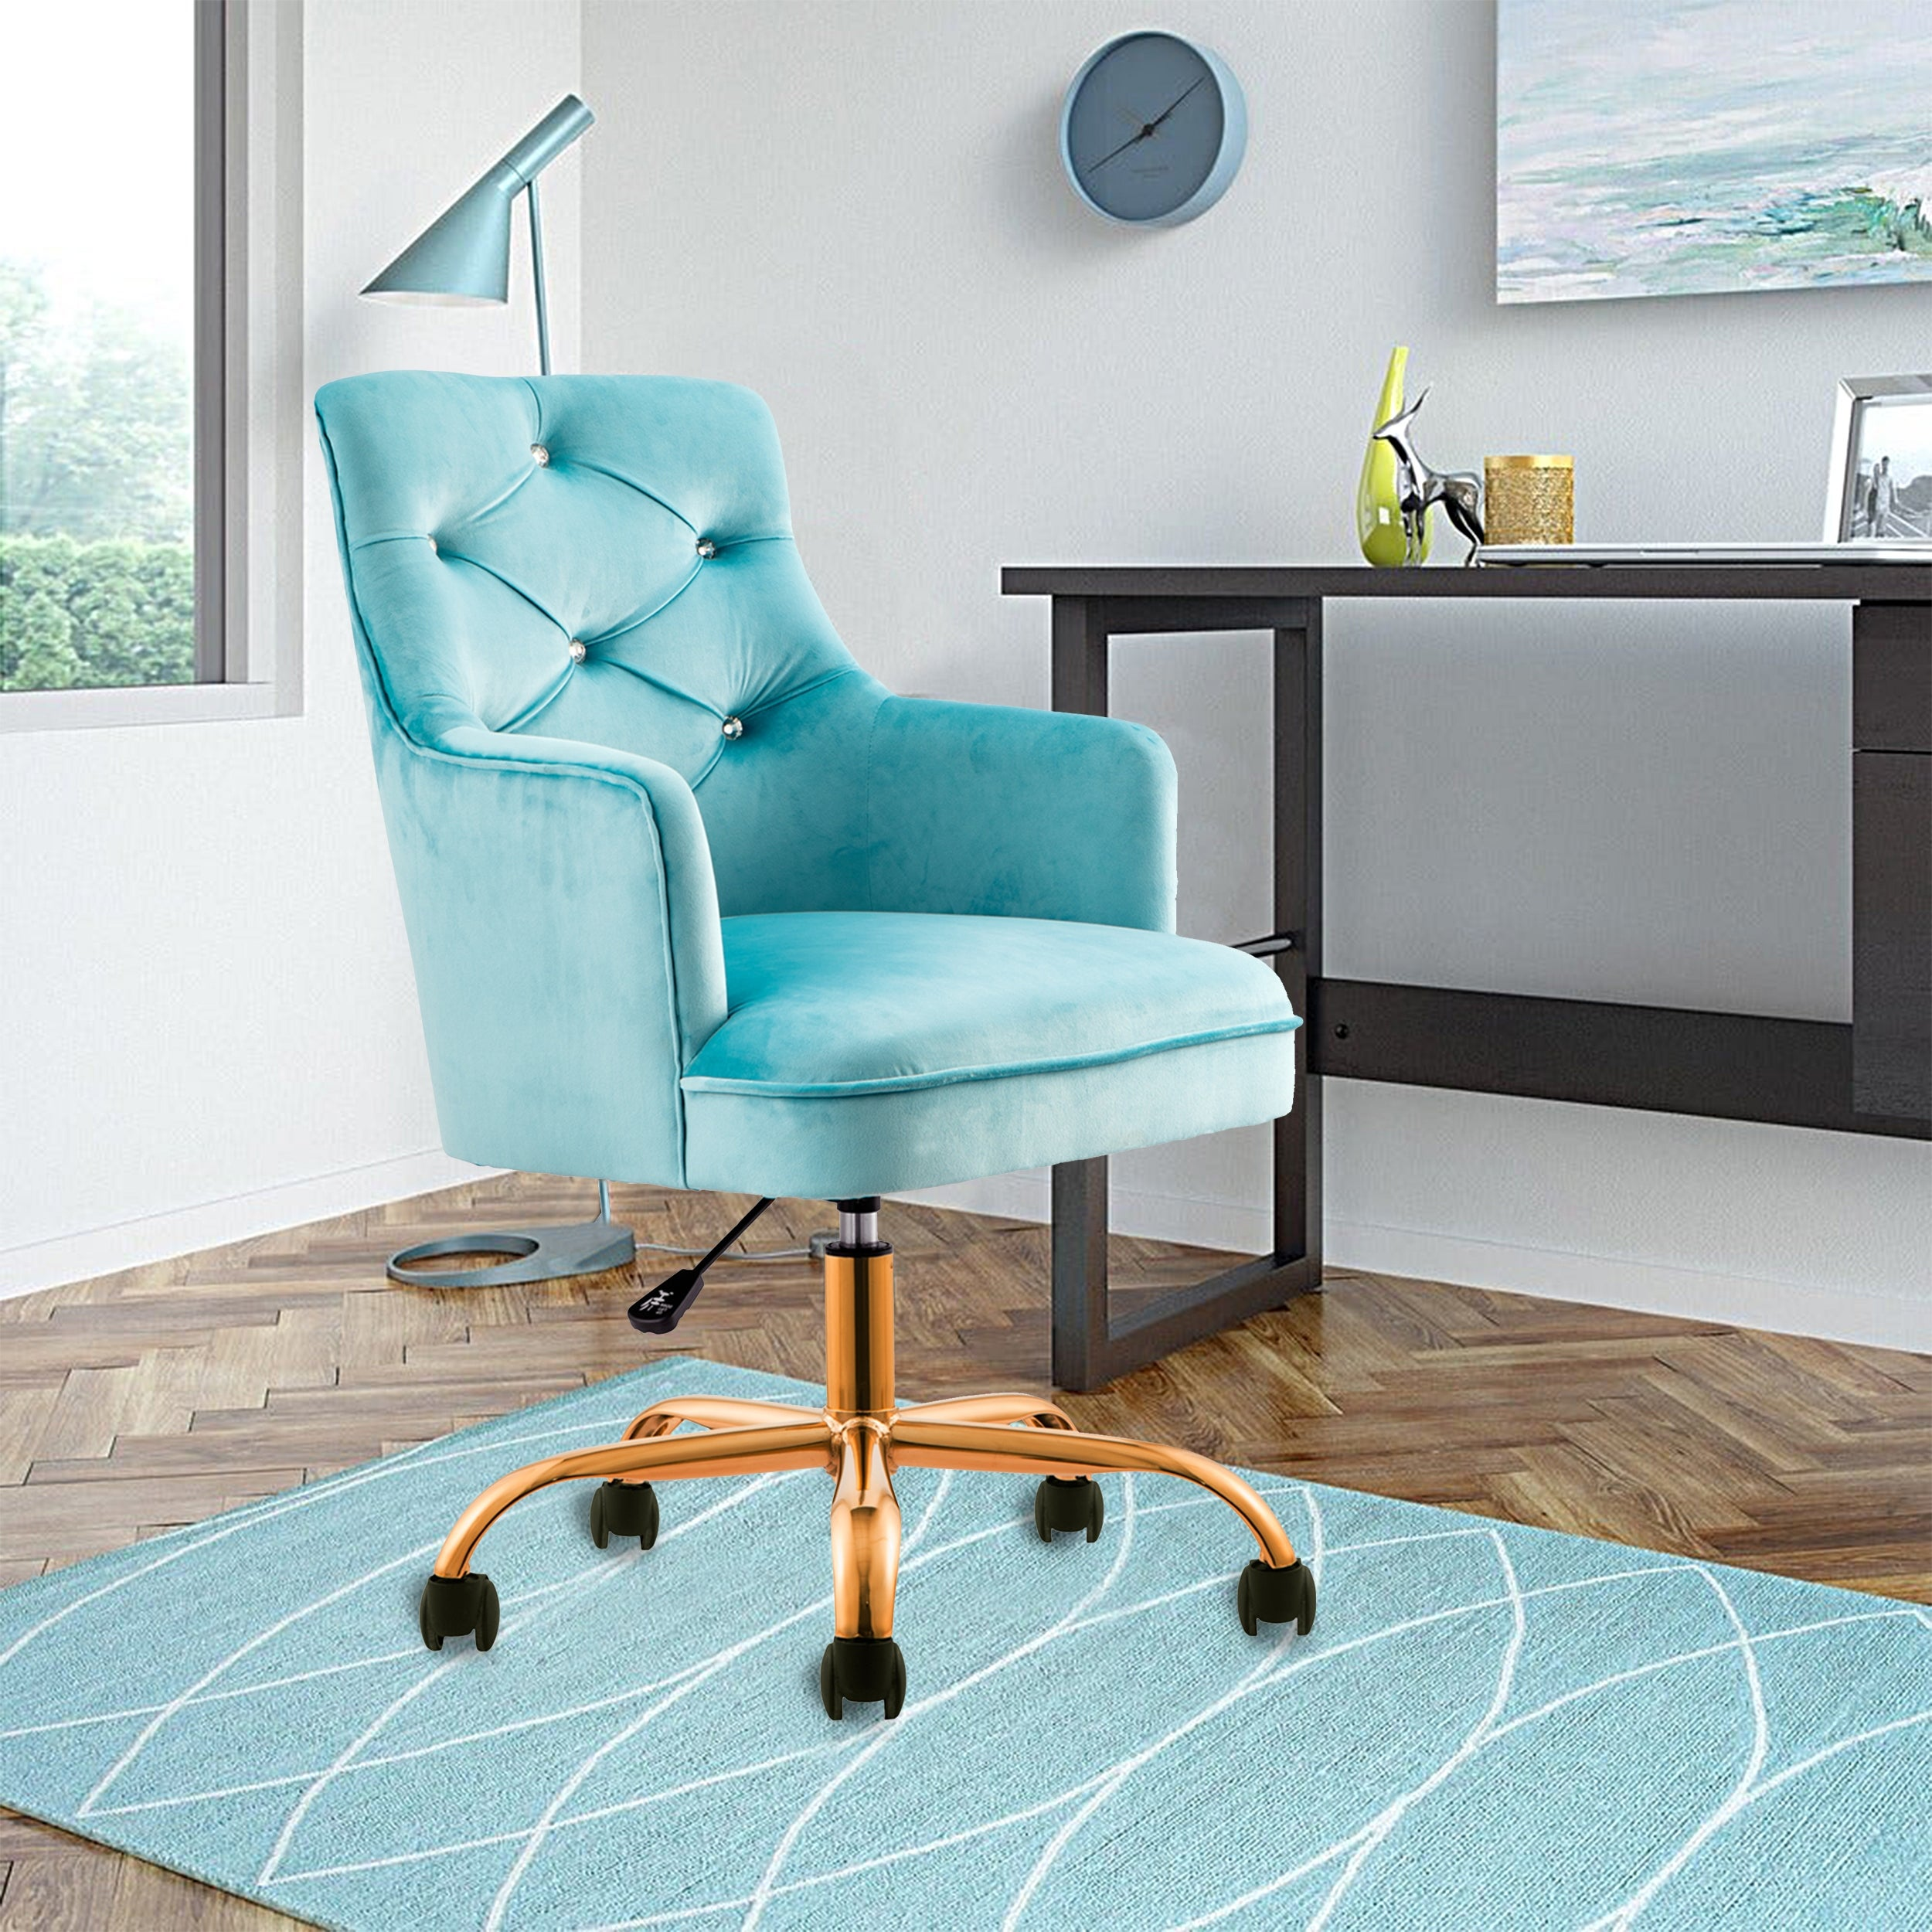 Shop Tufted Velvet Swivel Adjustable Home Office Chair Gold Glide Casters Overstock 31784230